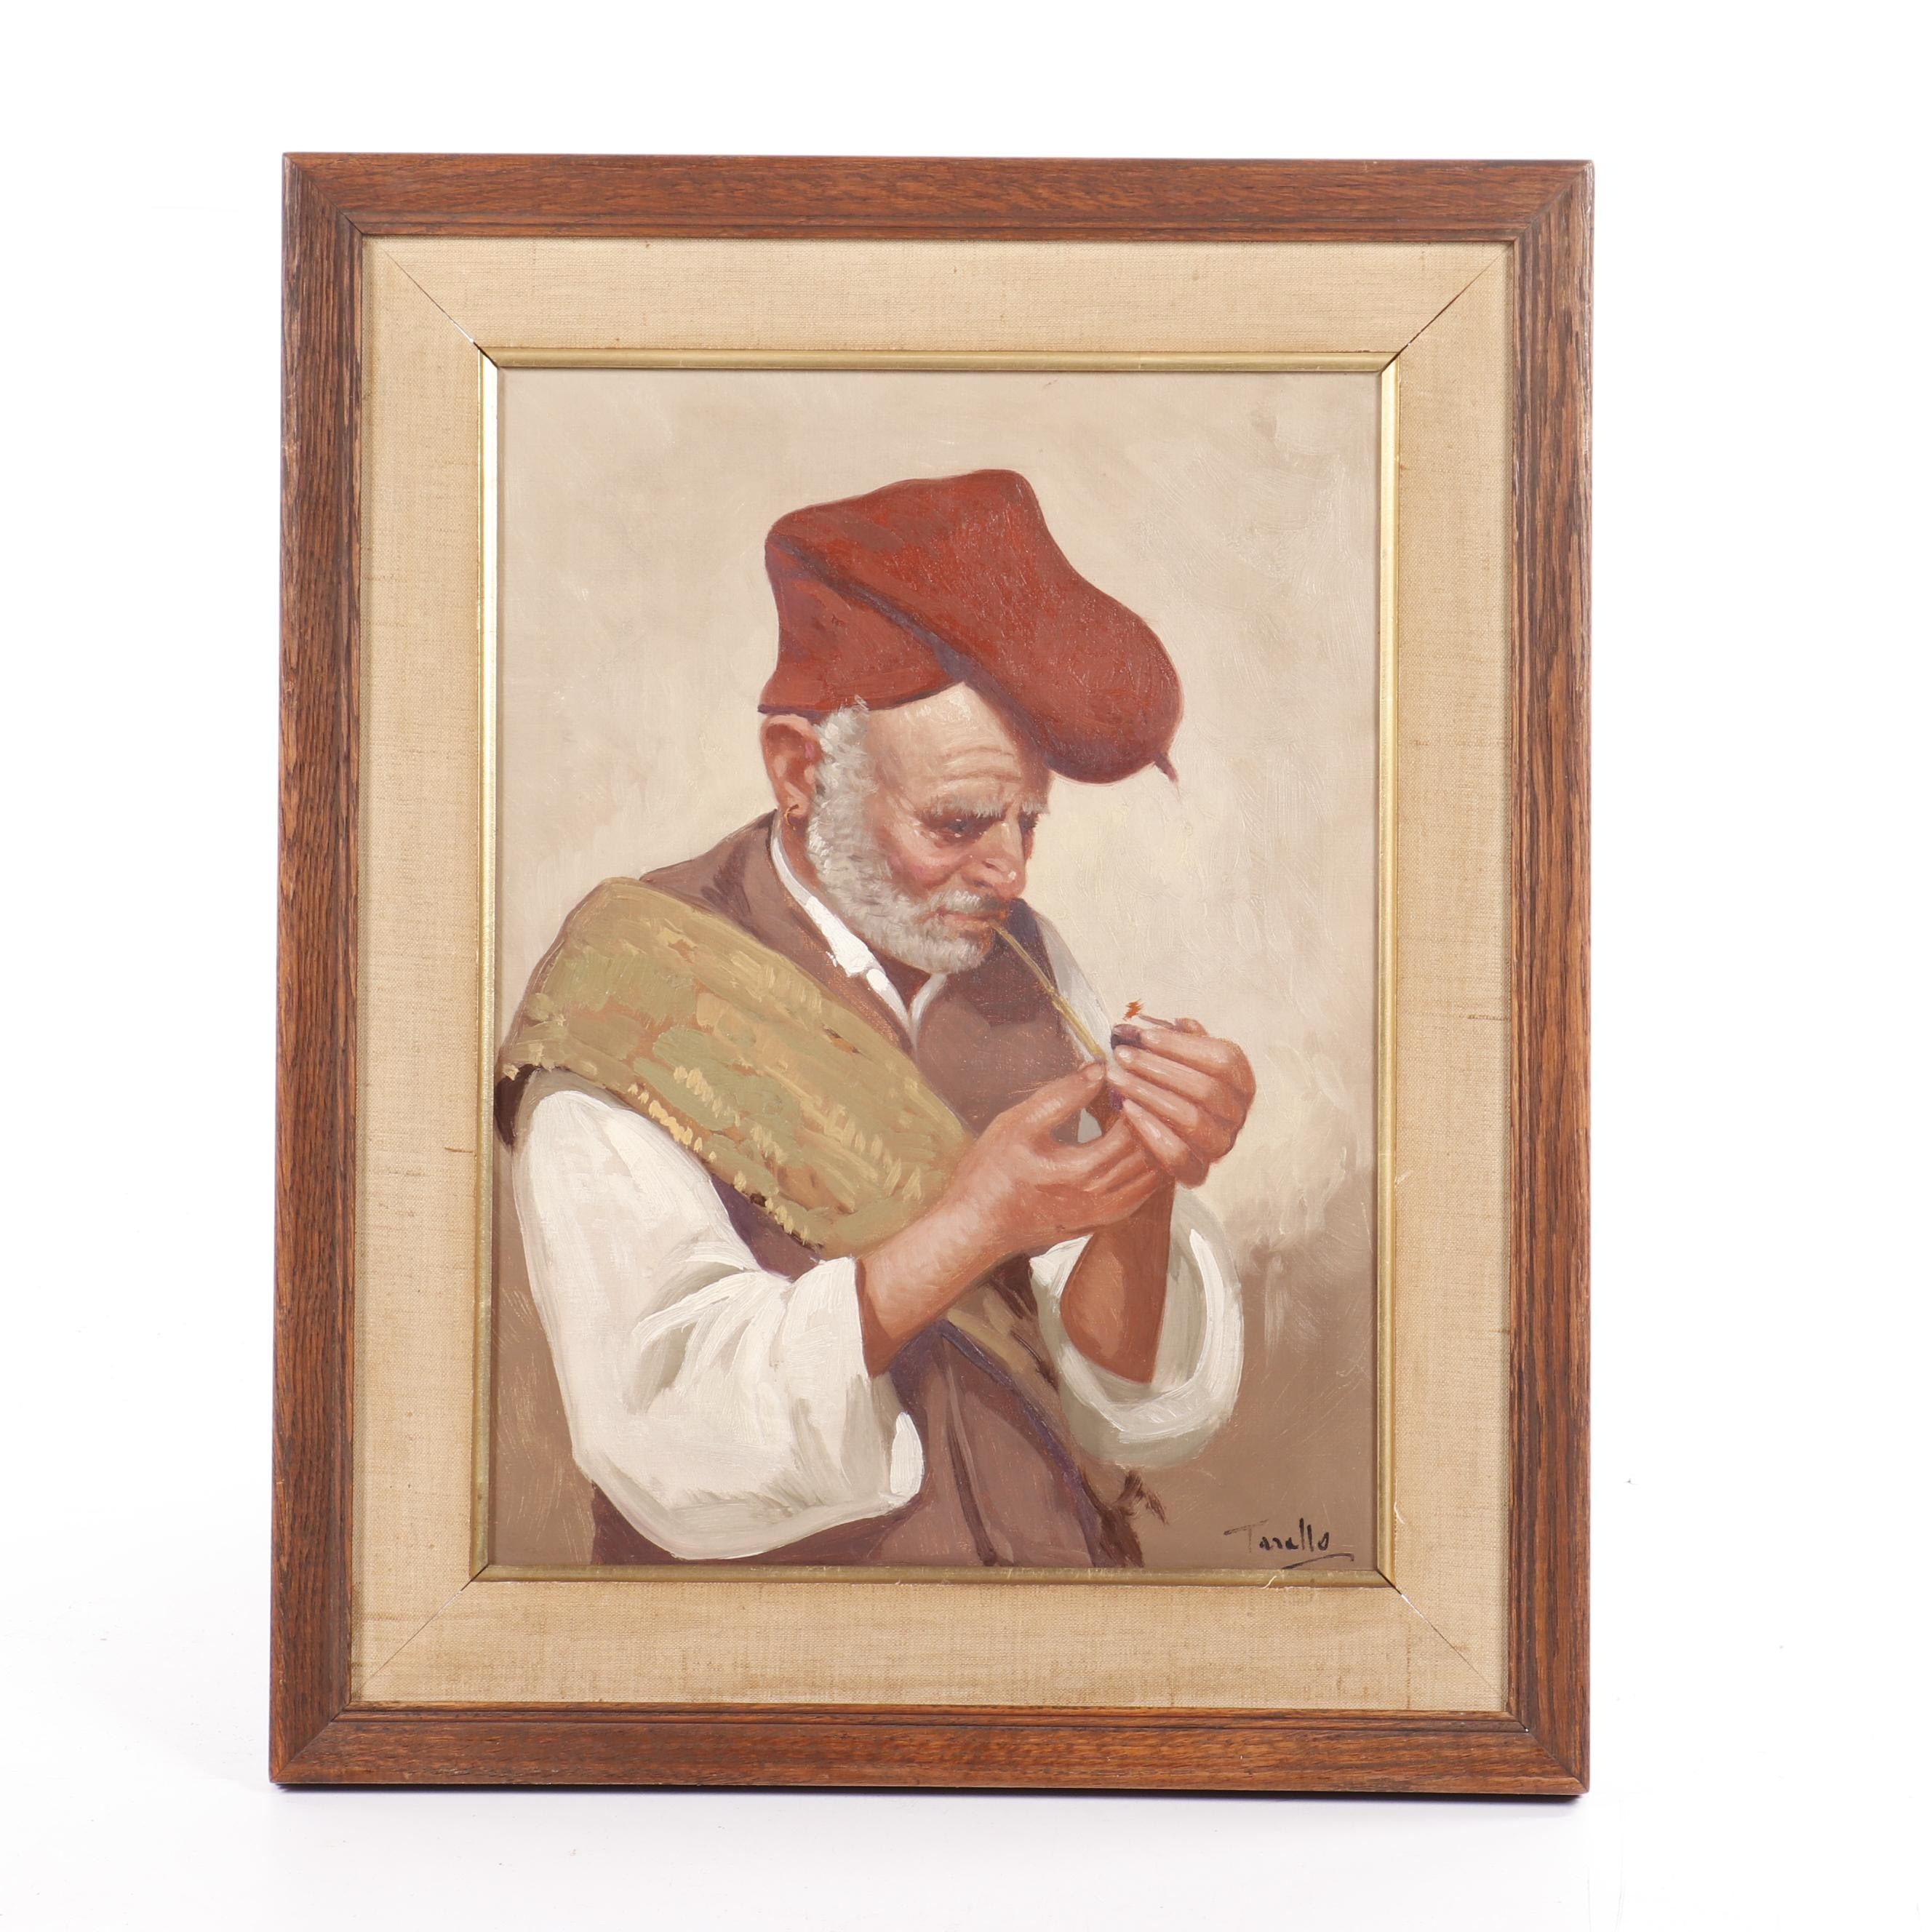 Tarallo Portrait Oil Painting of a Man